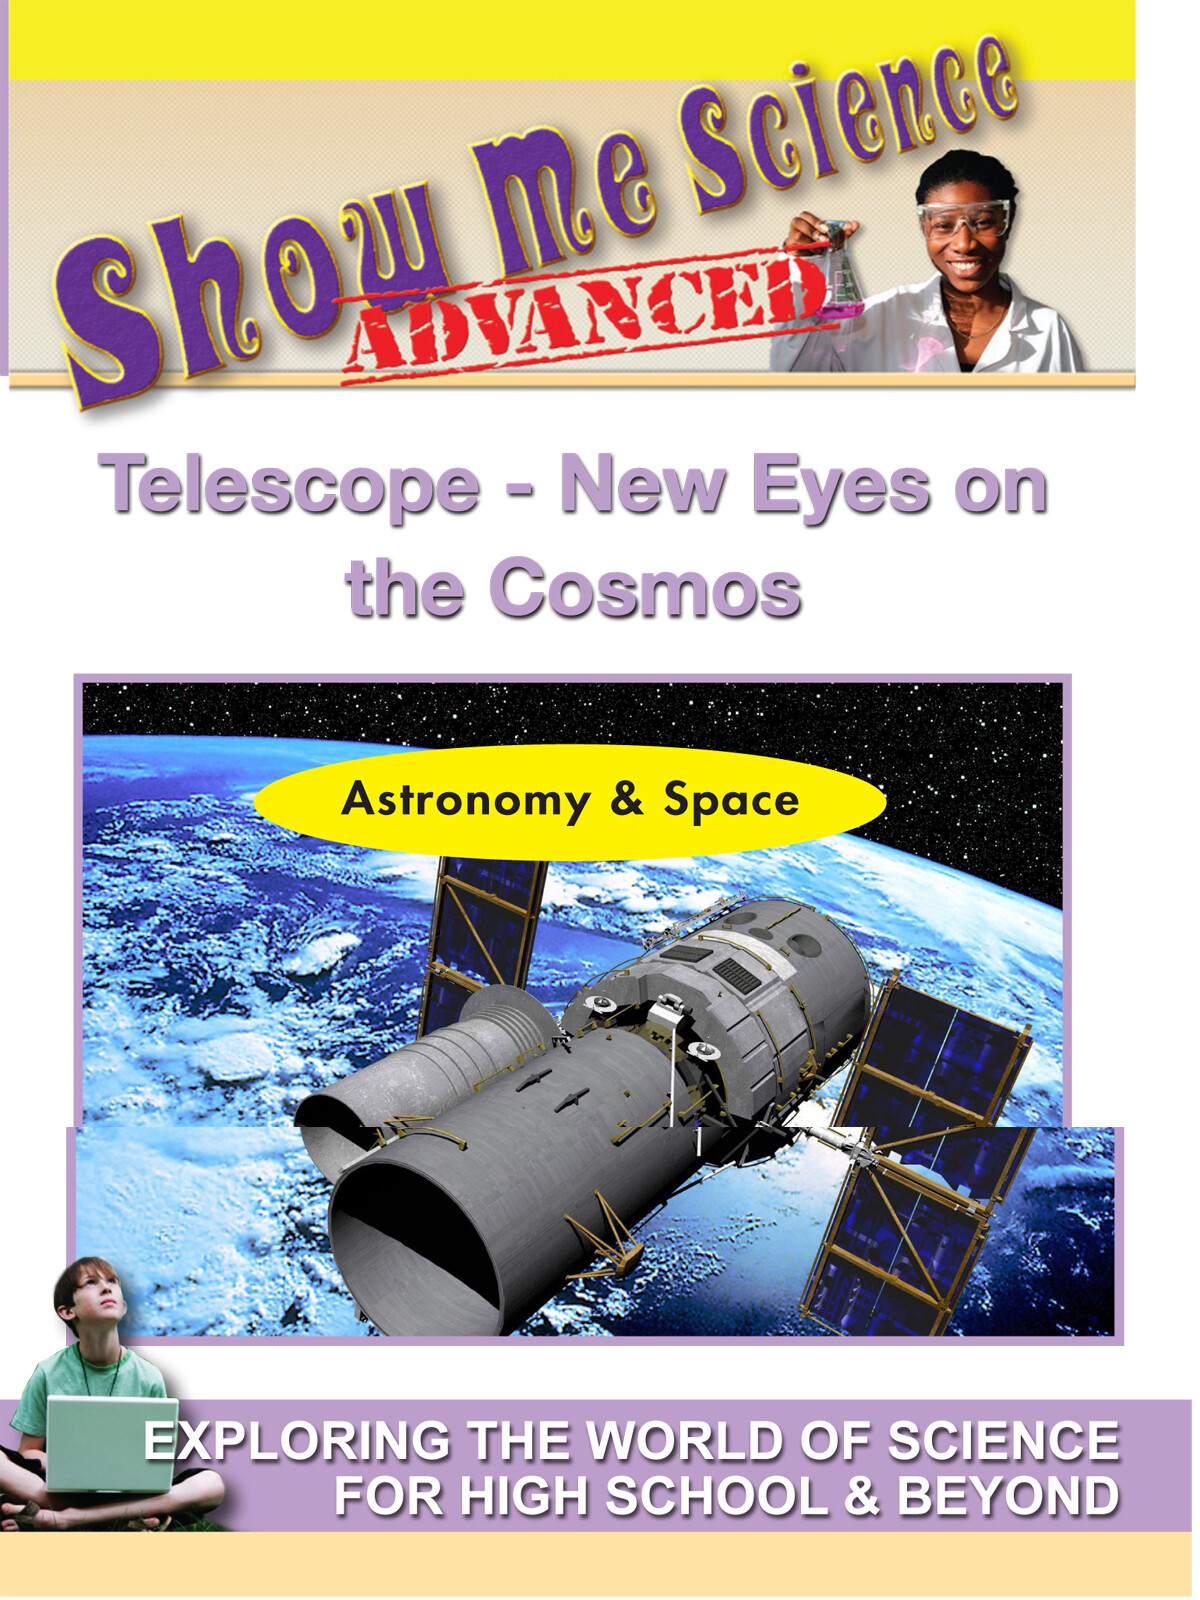 K4619 - Astronomy & Space Telescope New Eyes on the Cosmos